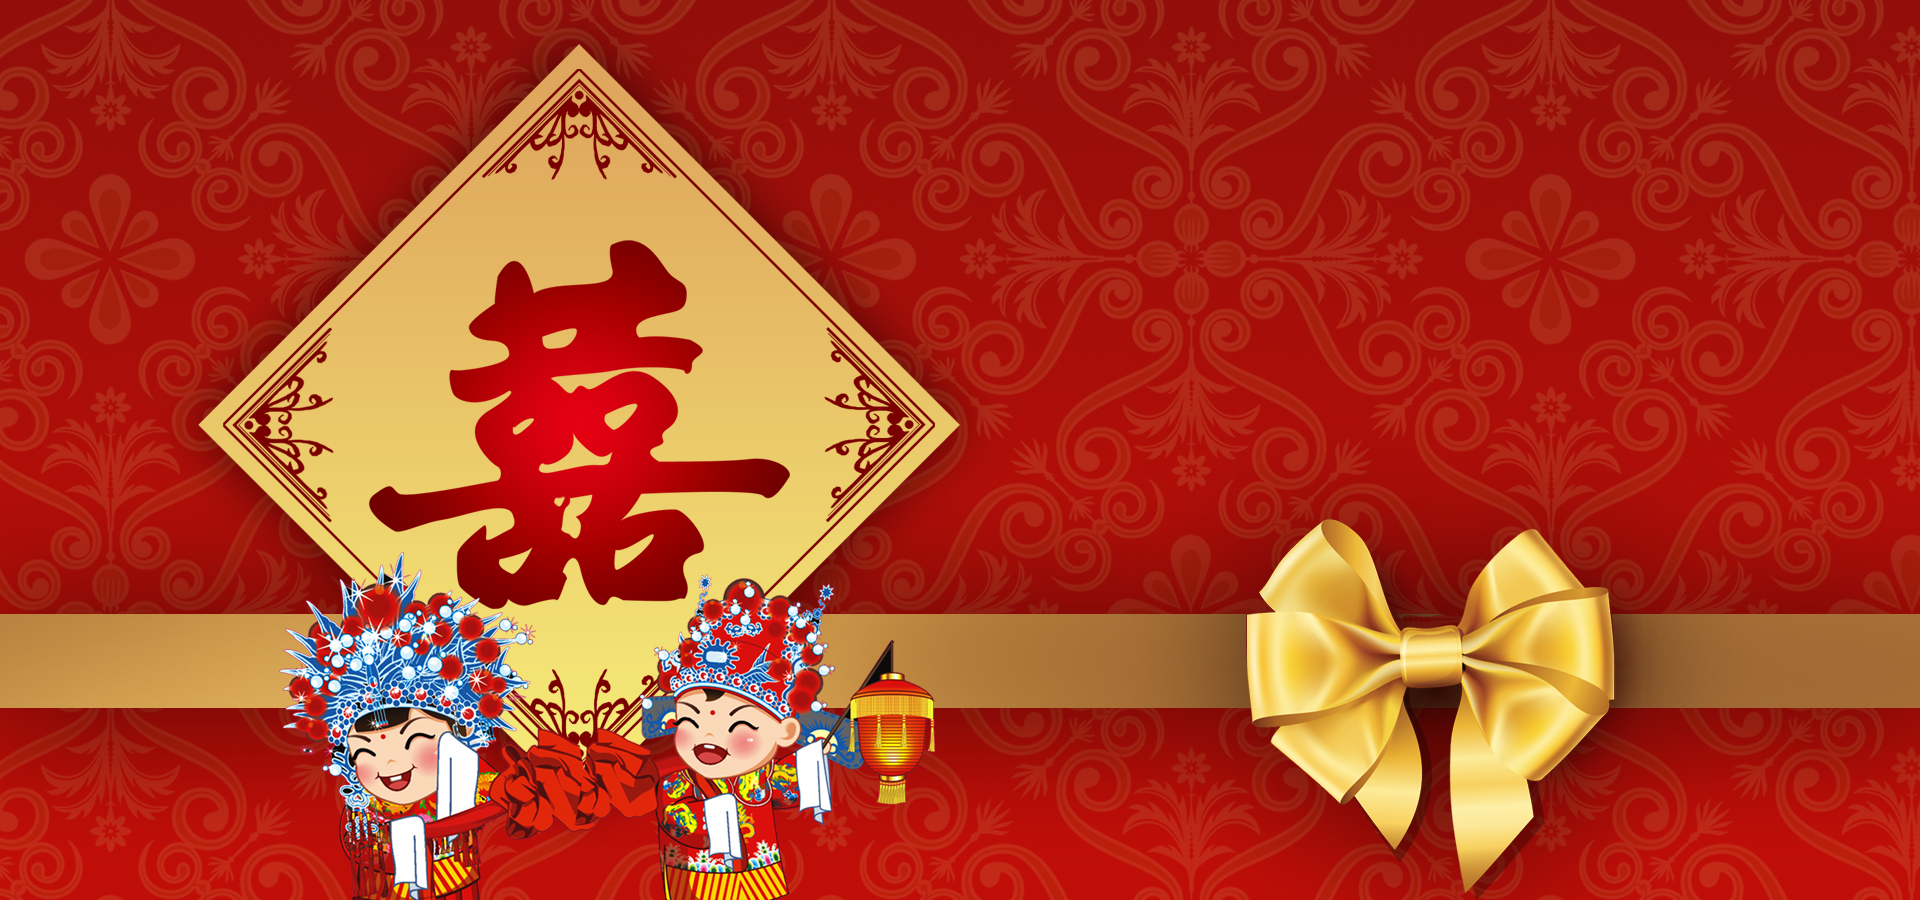 Chinese Wedding Background Texture Simple Red Banner